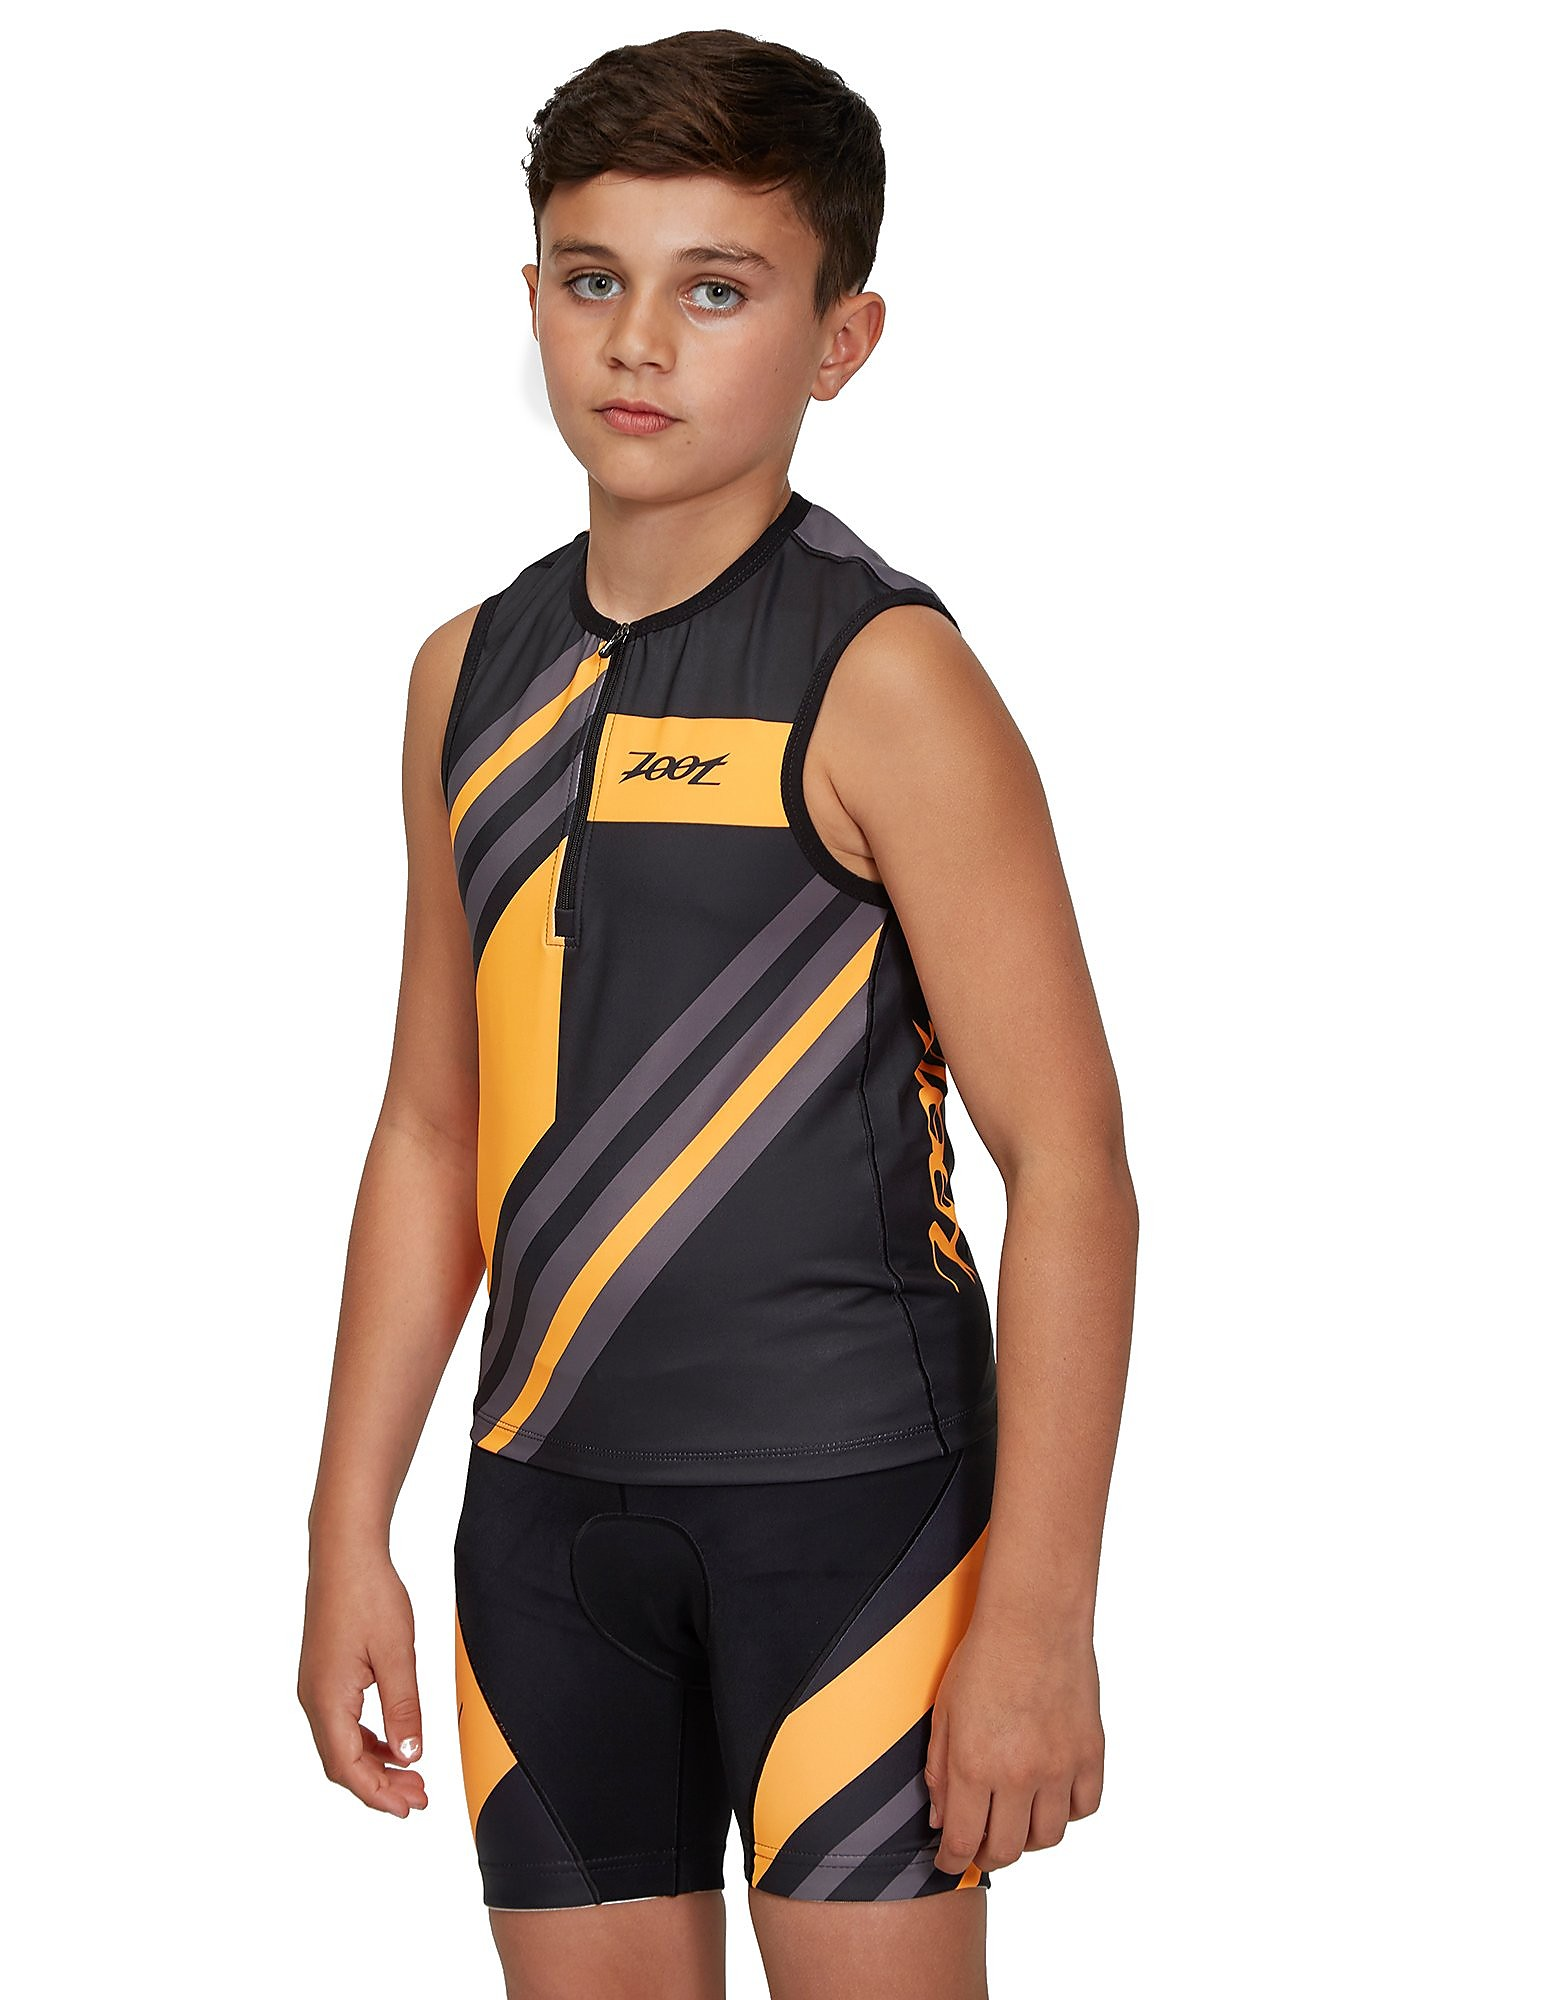 Zoot Protege Tri Top Junior